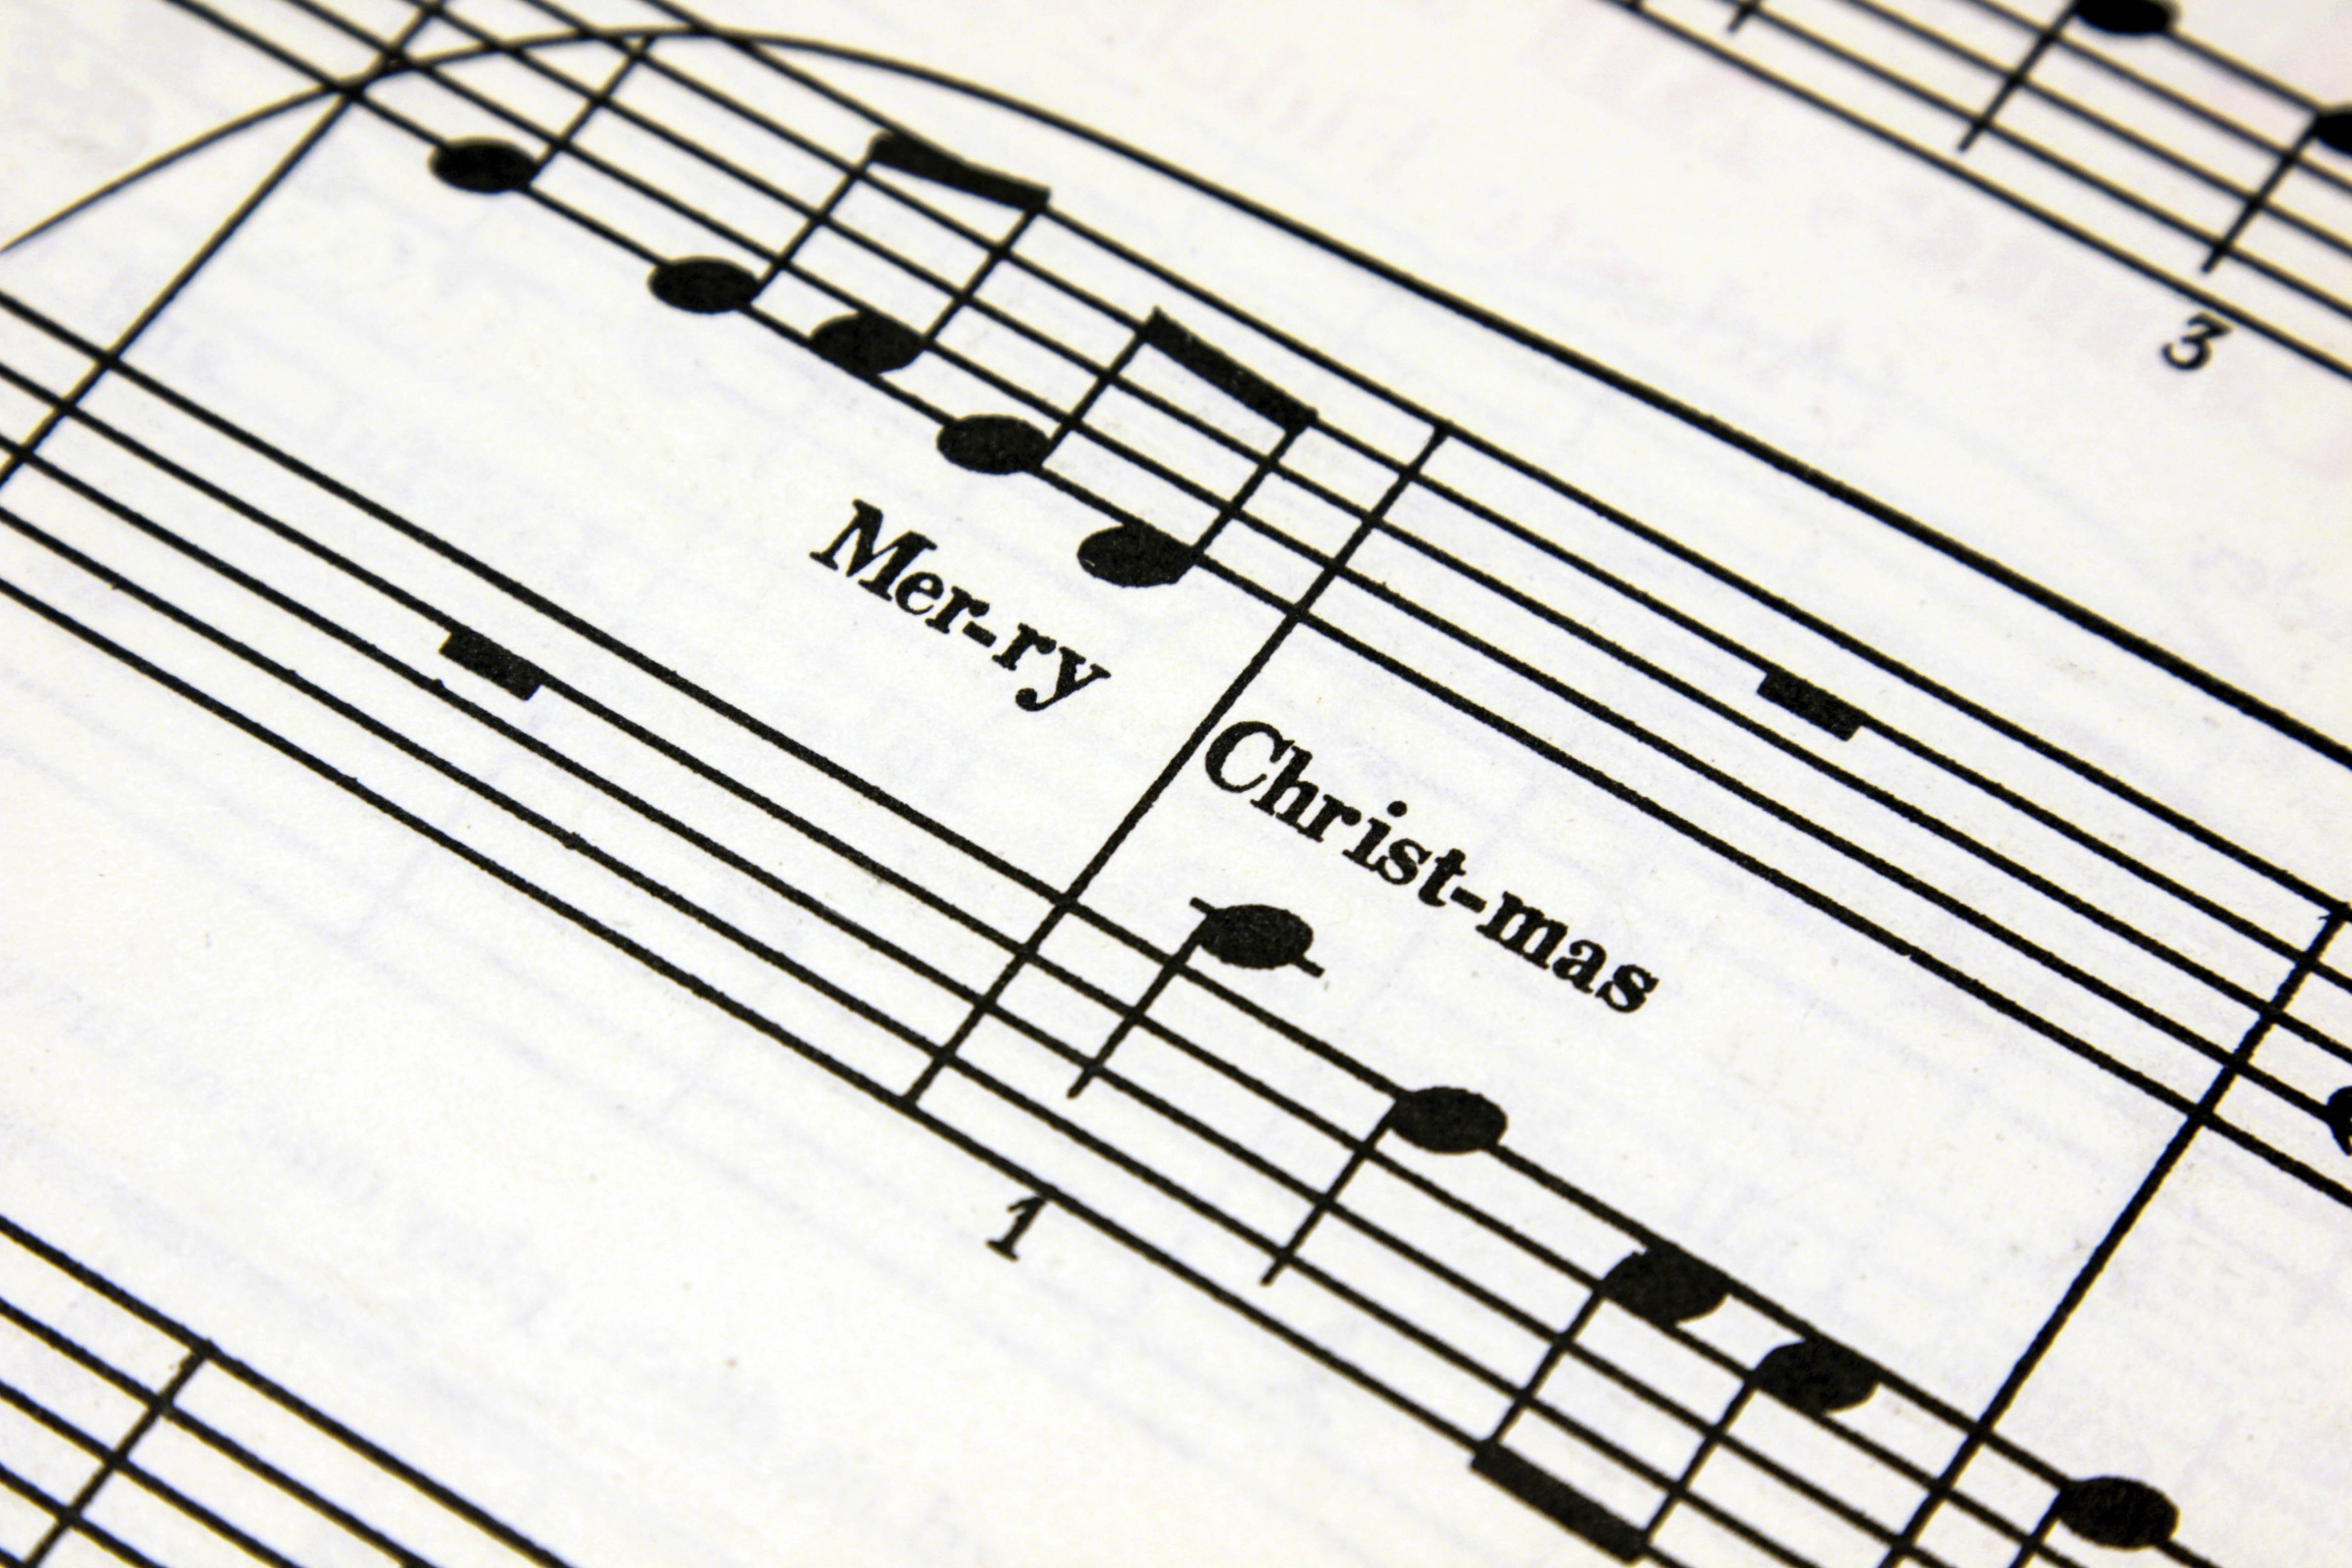 Christmas songs with storied pasts - Christmas songs remain near and dear to people's hearts, and a few of these beloved songs have interesting back stories. Plus, check out this list of the 10 most downloaded Christmas songs of 2018.